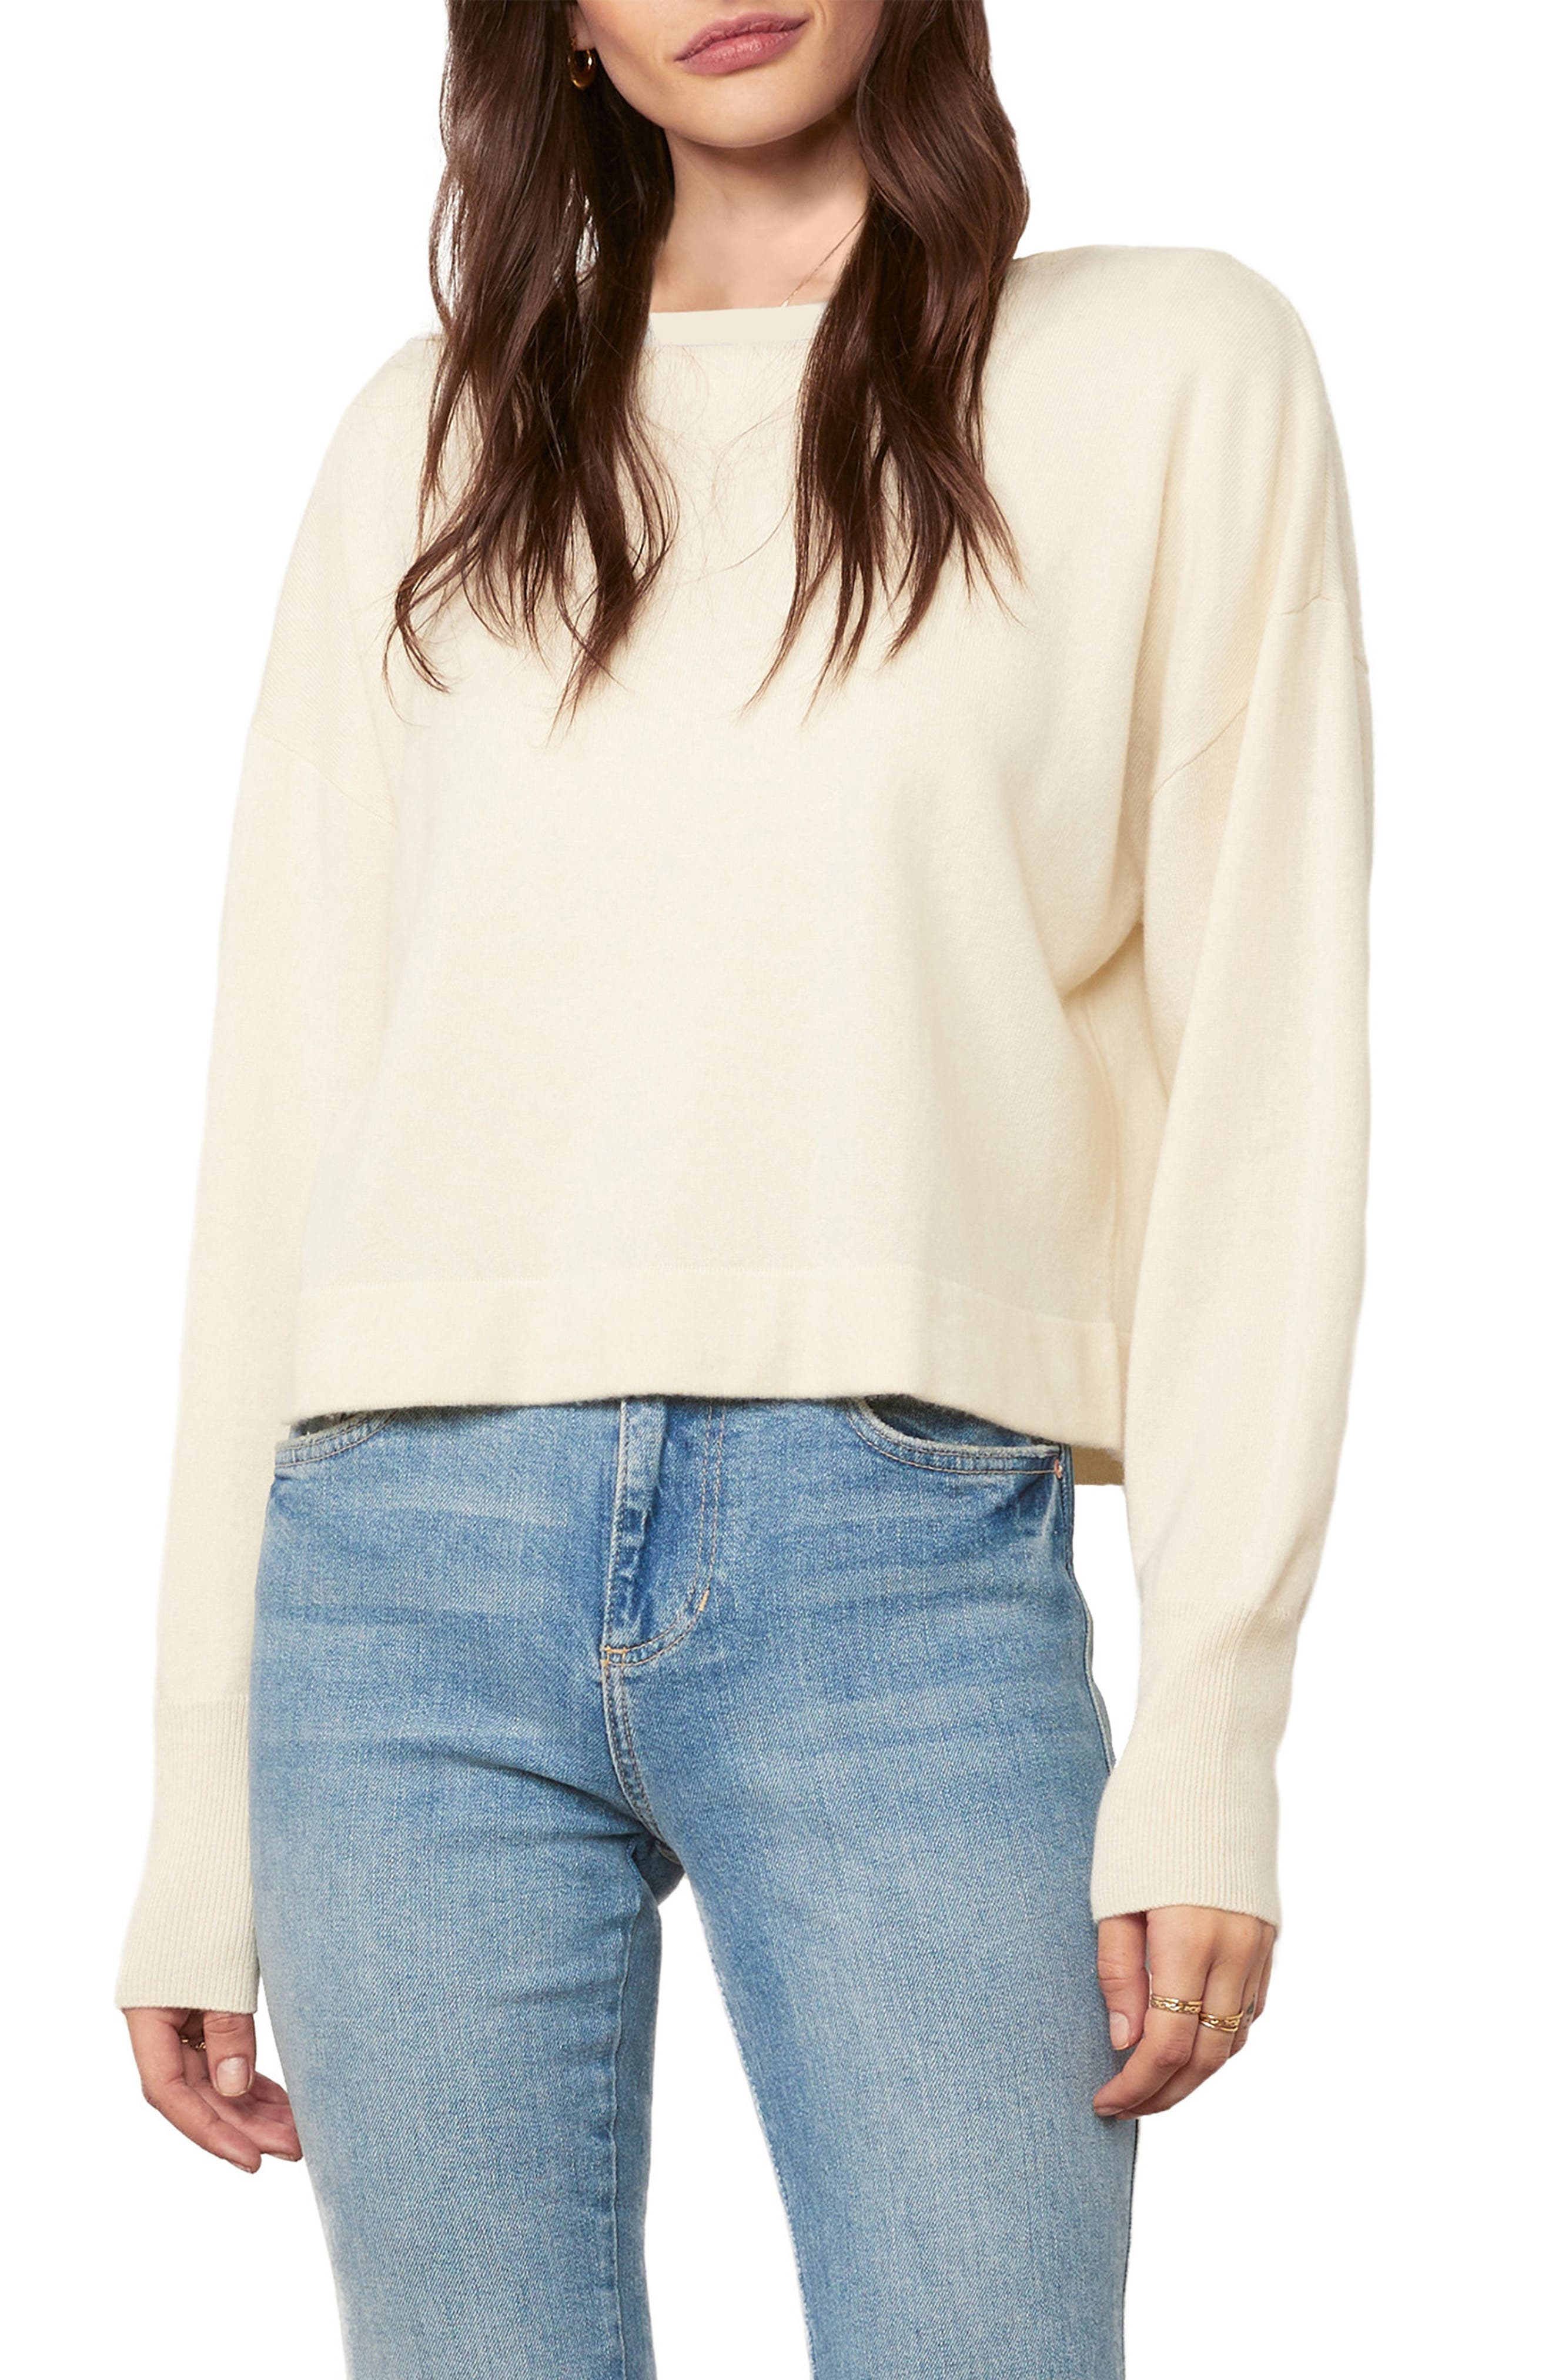 Sumptuous cashmere softens a cropped sweater that\\\'s a cozy style standout. Style Name: Cupcakes And Cashmere Suzie Wool & Cashmere Crop Sweater. Style Number: 6103422. Available in stores.